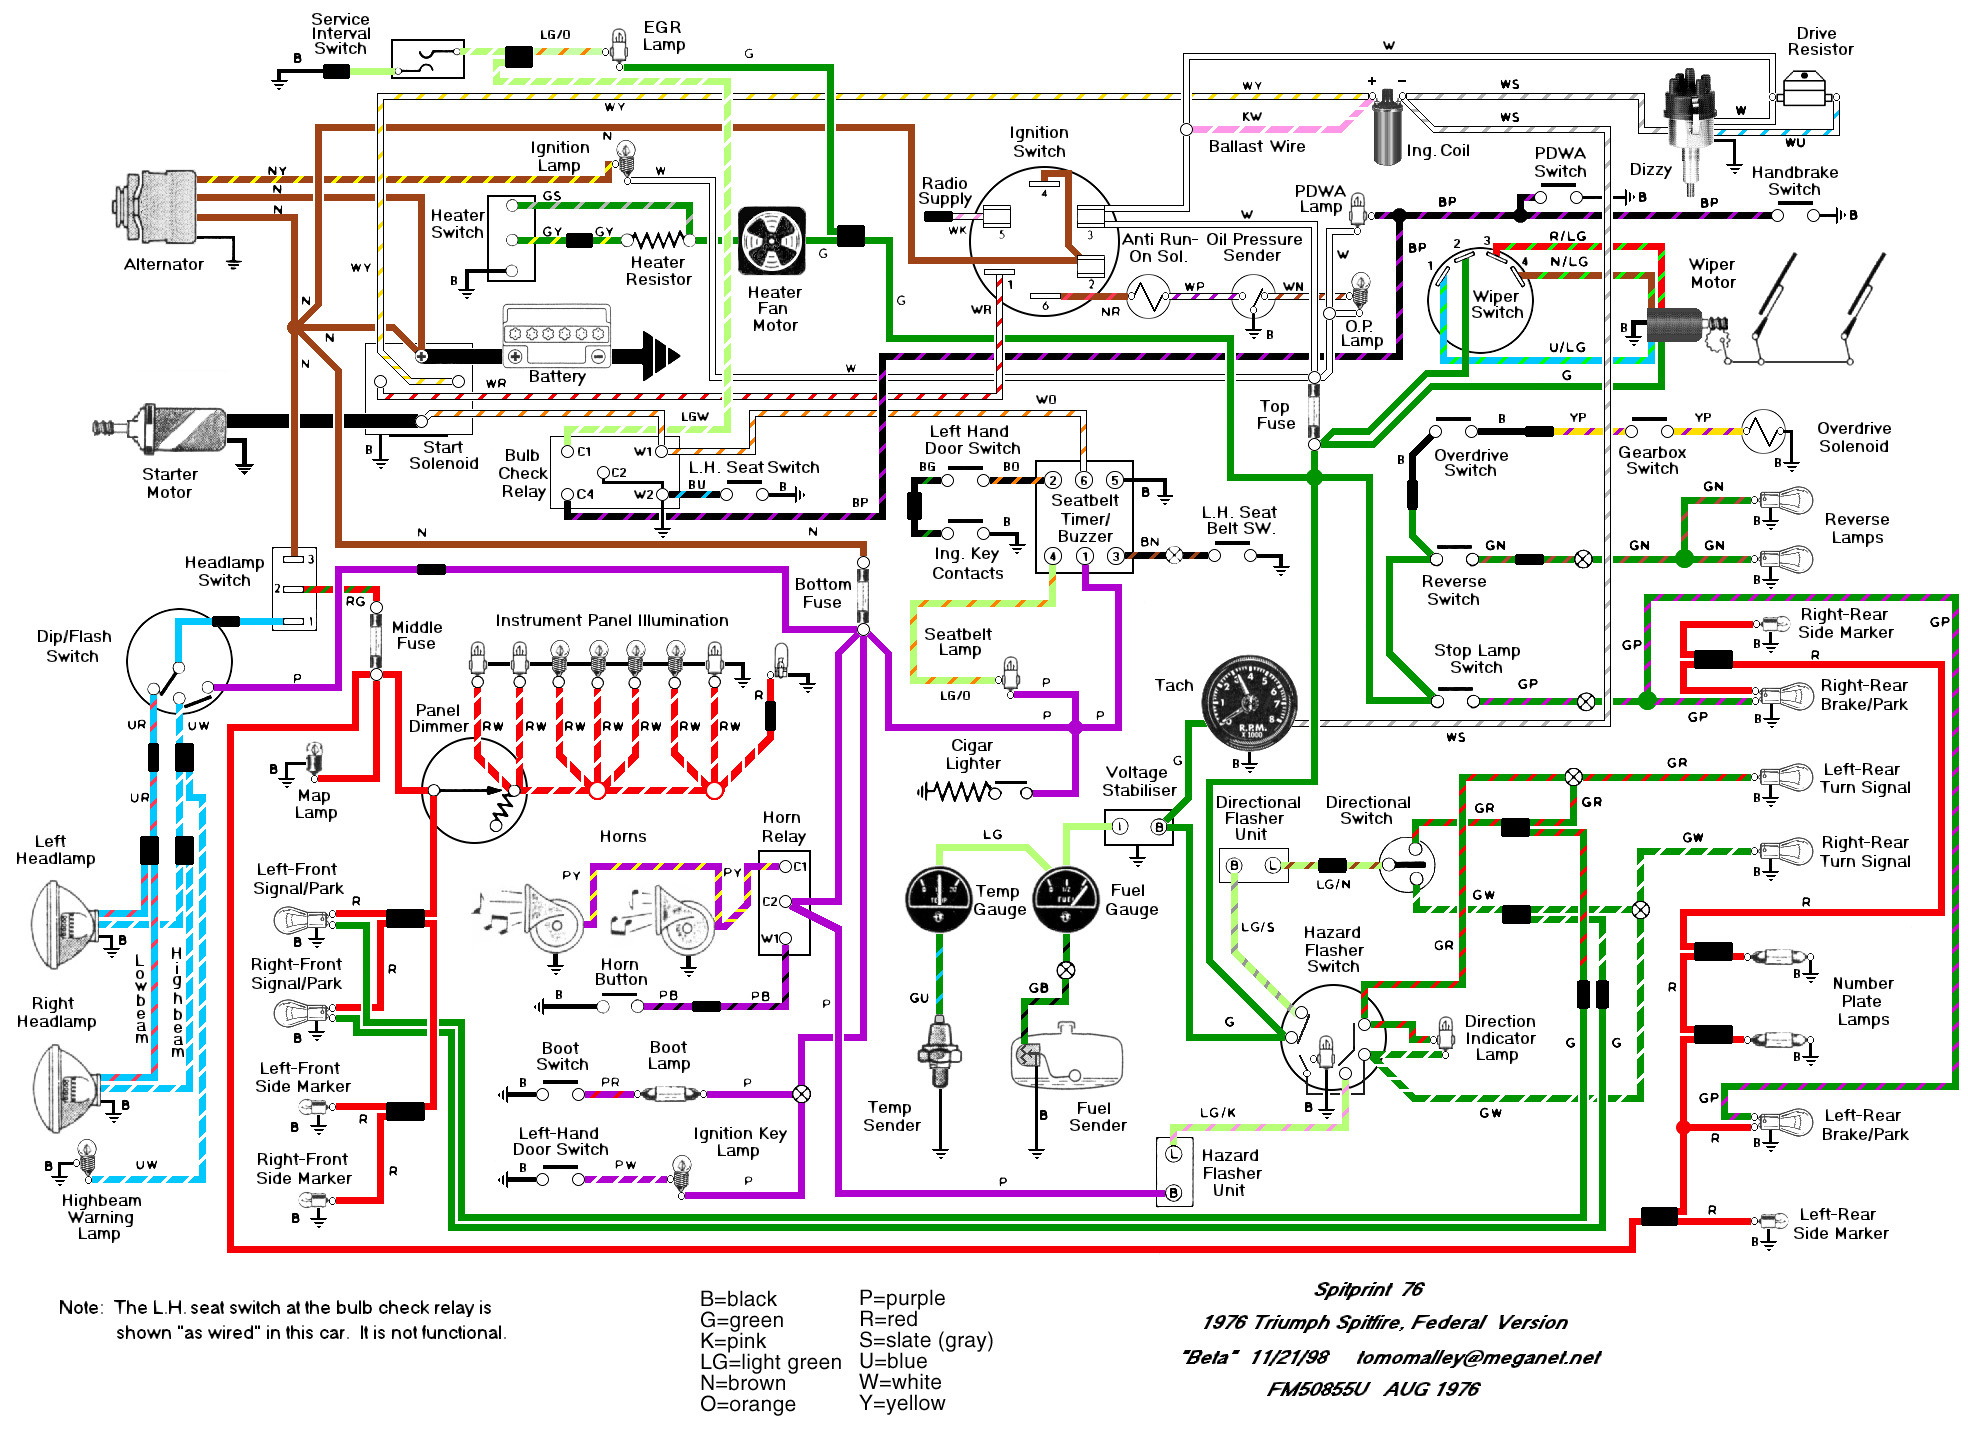 Cartoon Black And White Living Room as well 1972 Mgb Ignition Wiring Diagram furthermore 79 Mg Midget Wiring Diagram further Mgb wd also Residential Electrical Panel Parts Diagram. on triumph spitfire distributor wiring diagram